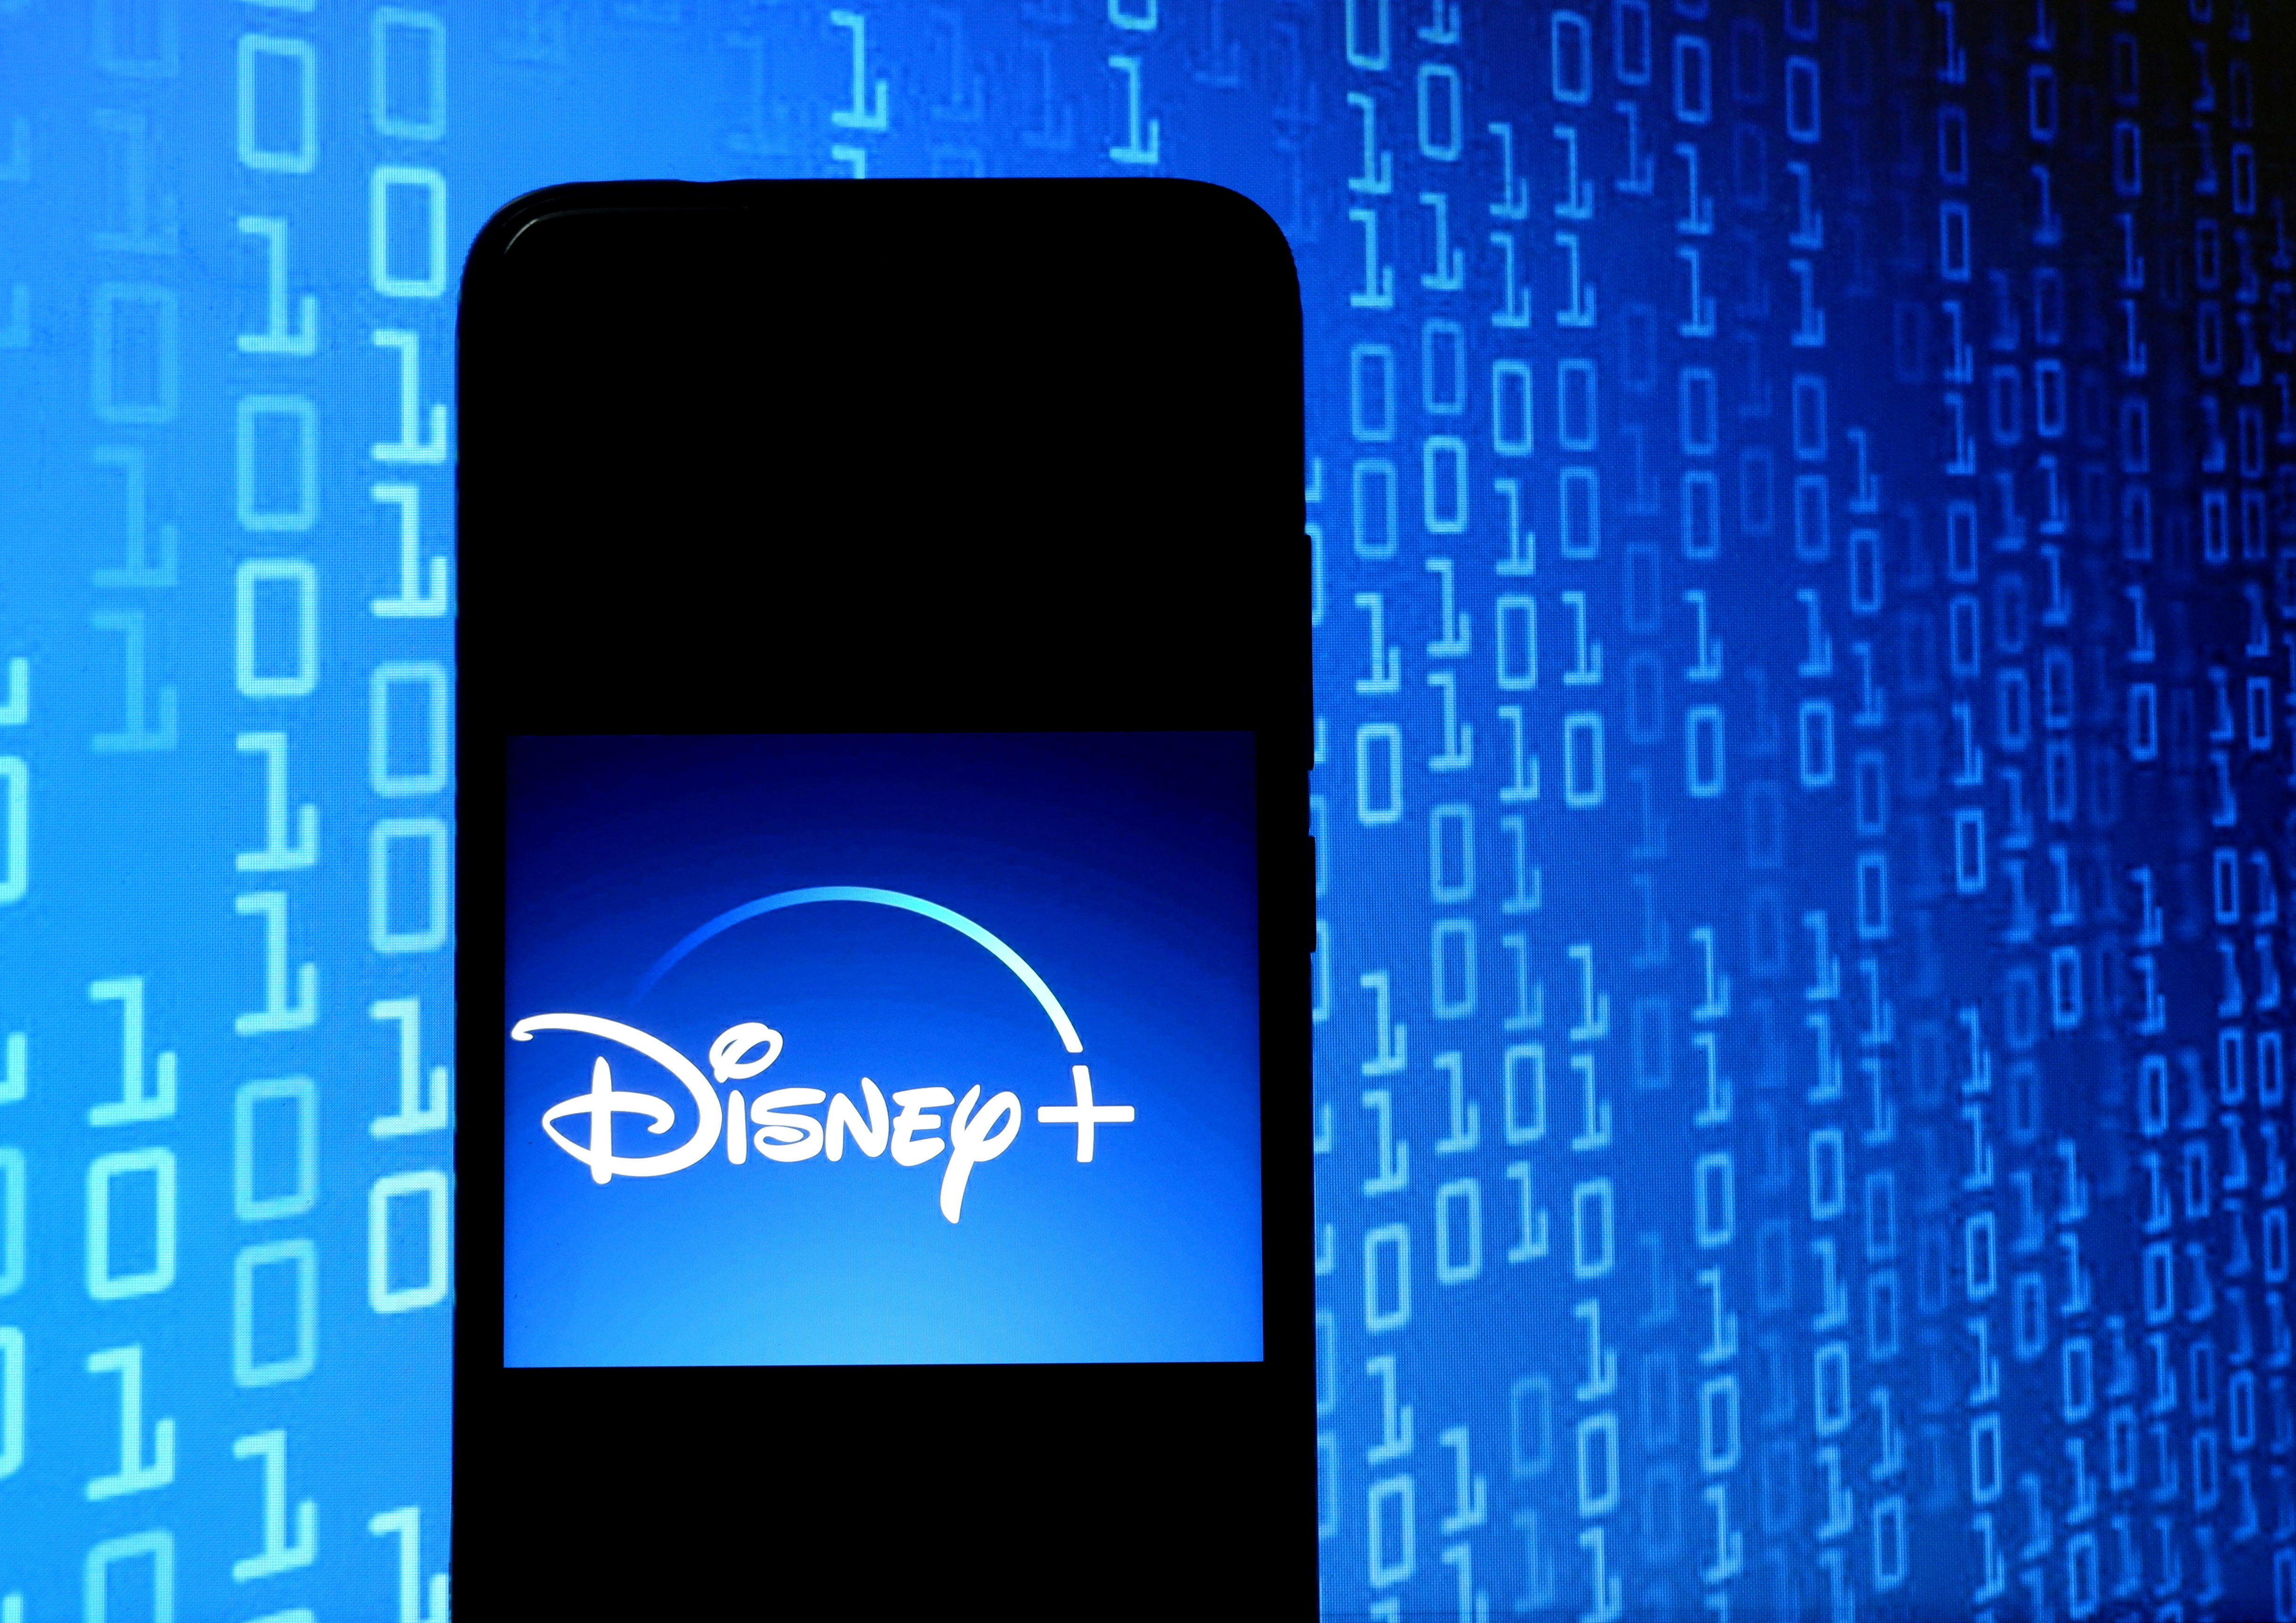 A photo illustration of the Disney+ app on a cellphone screen.